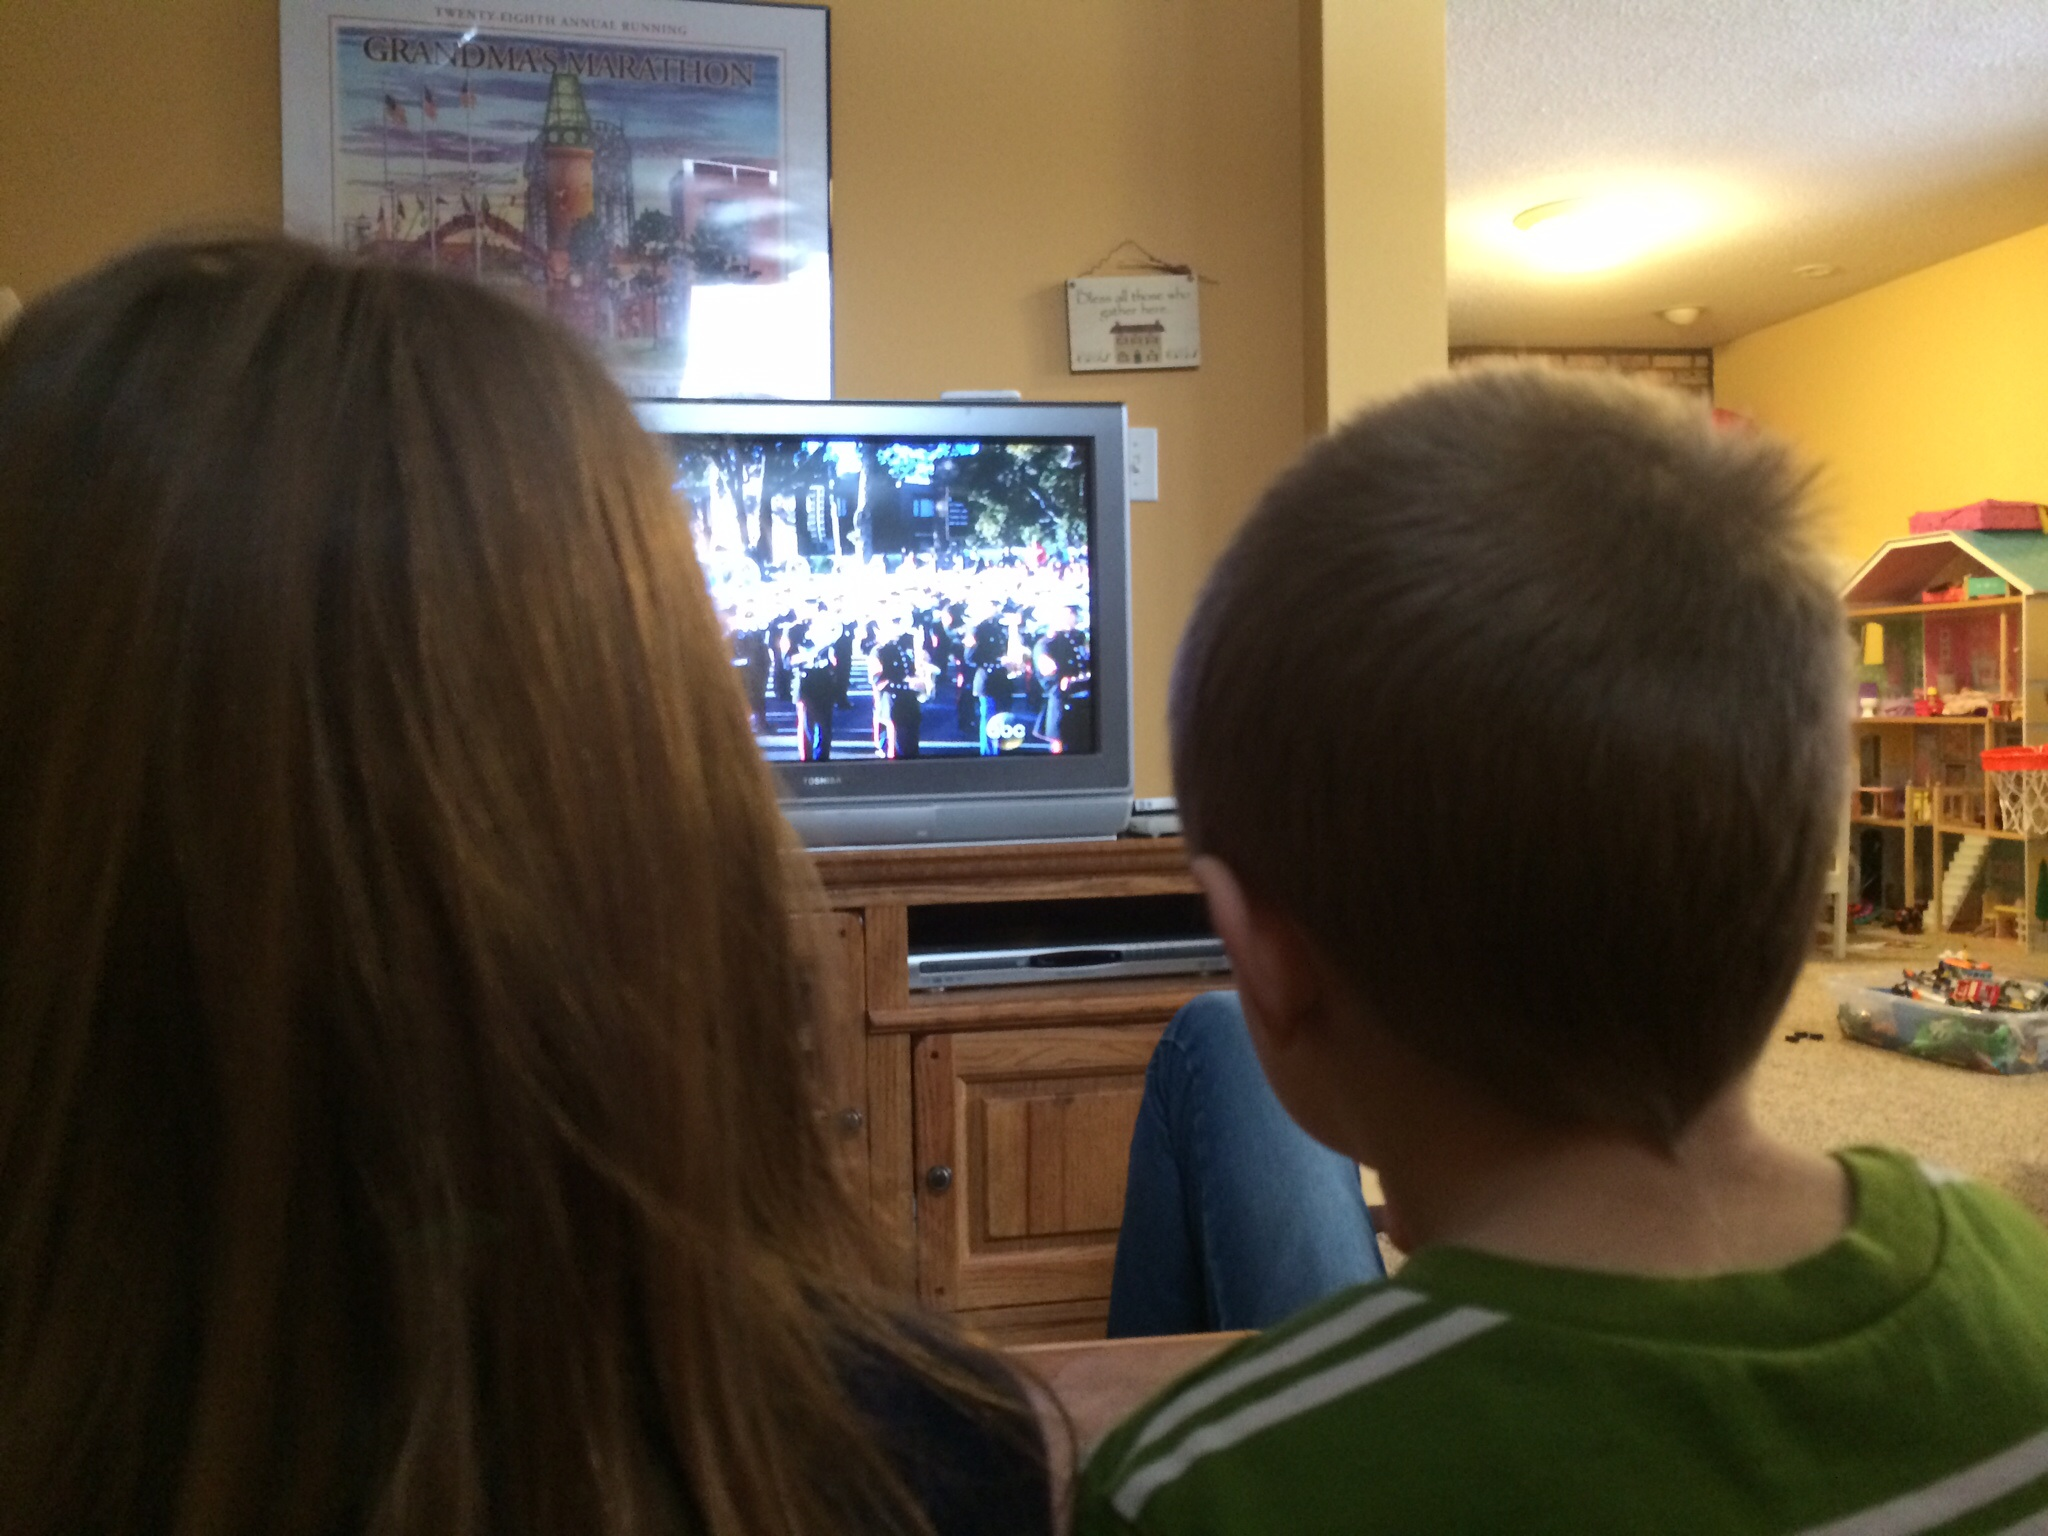 Watching the parade!